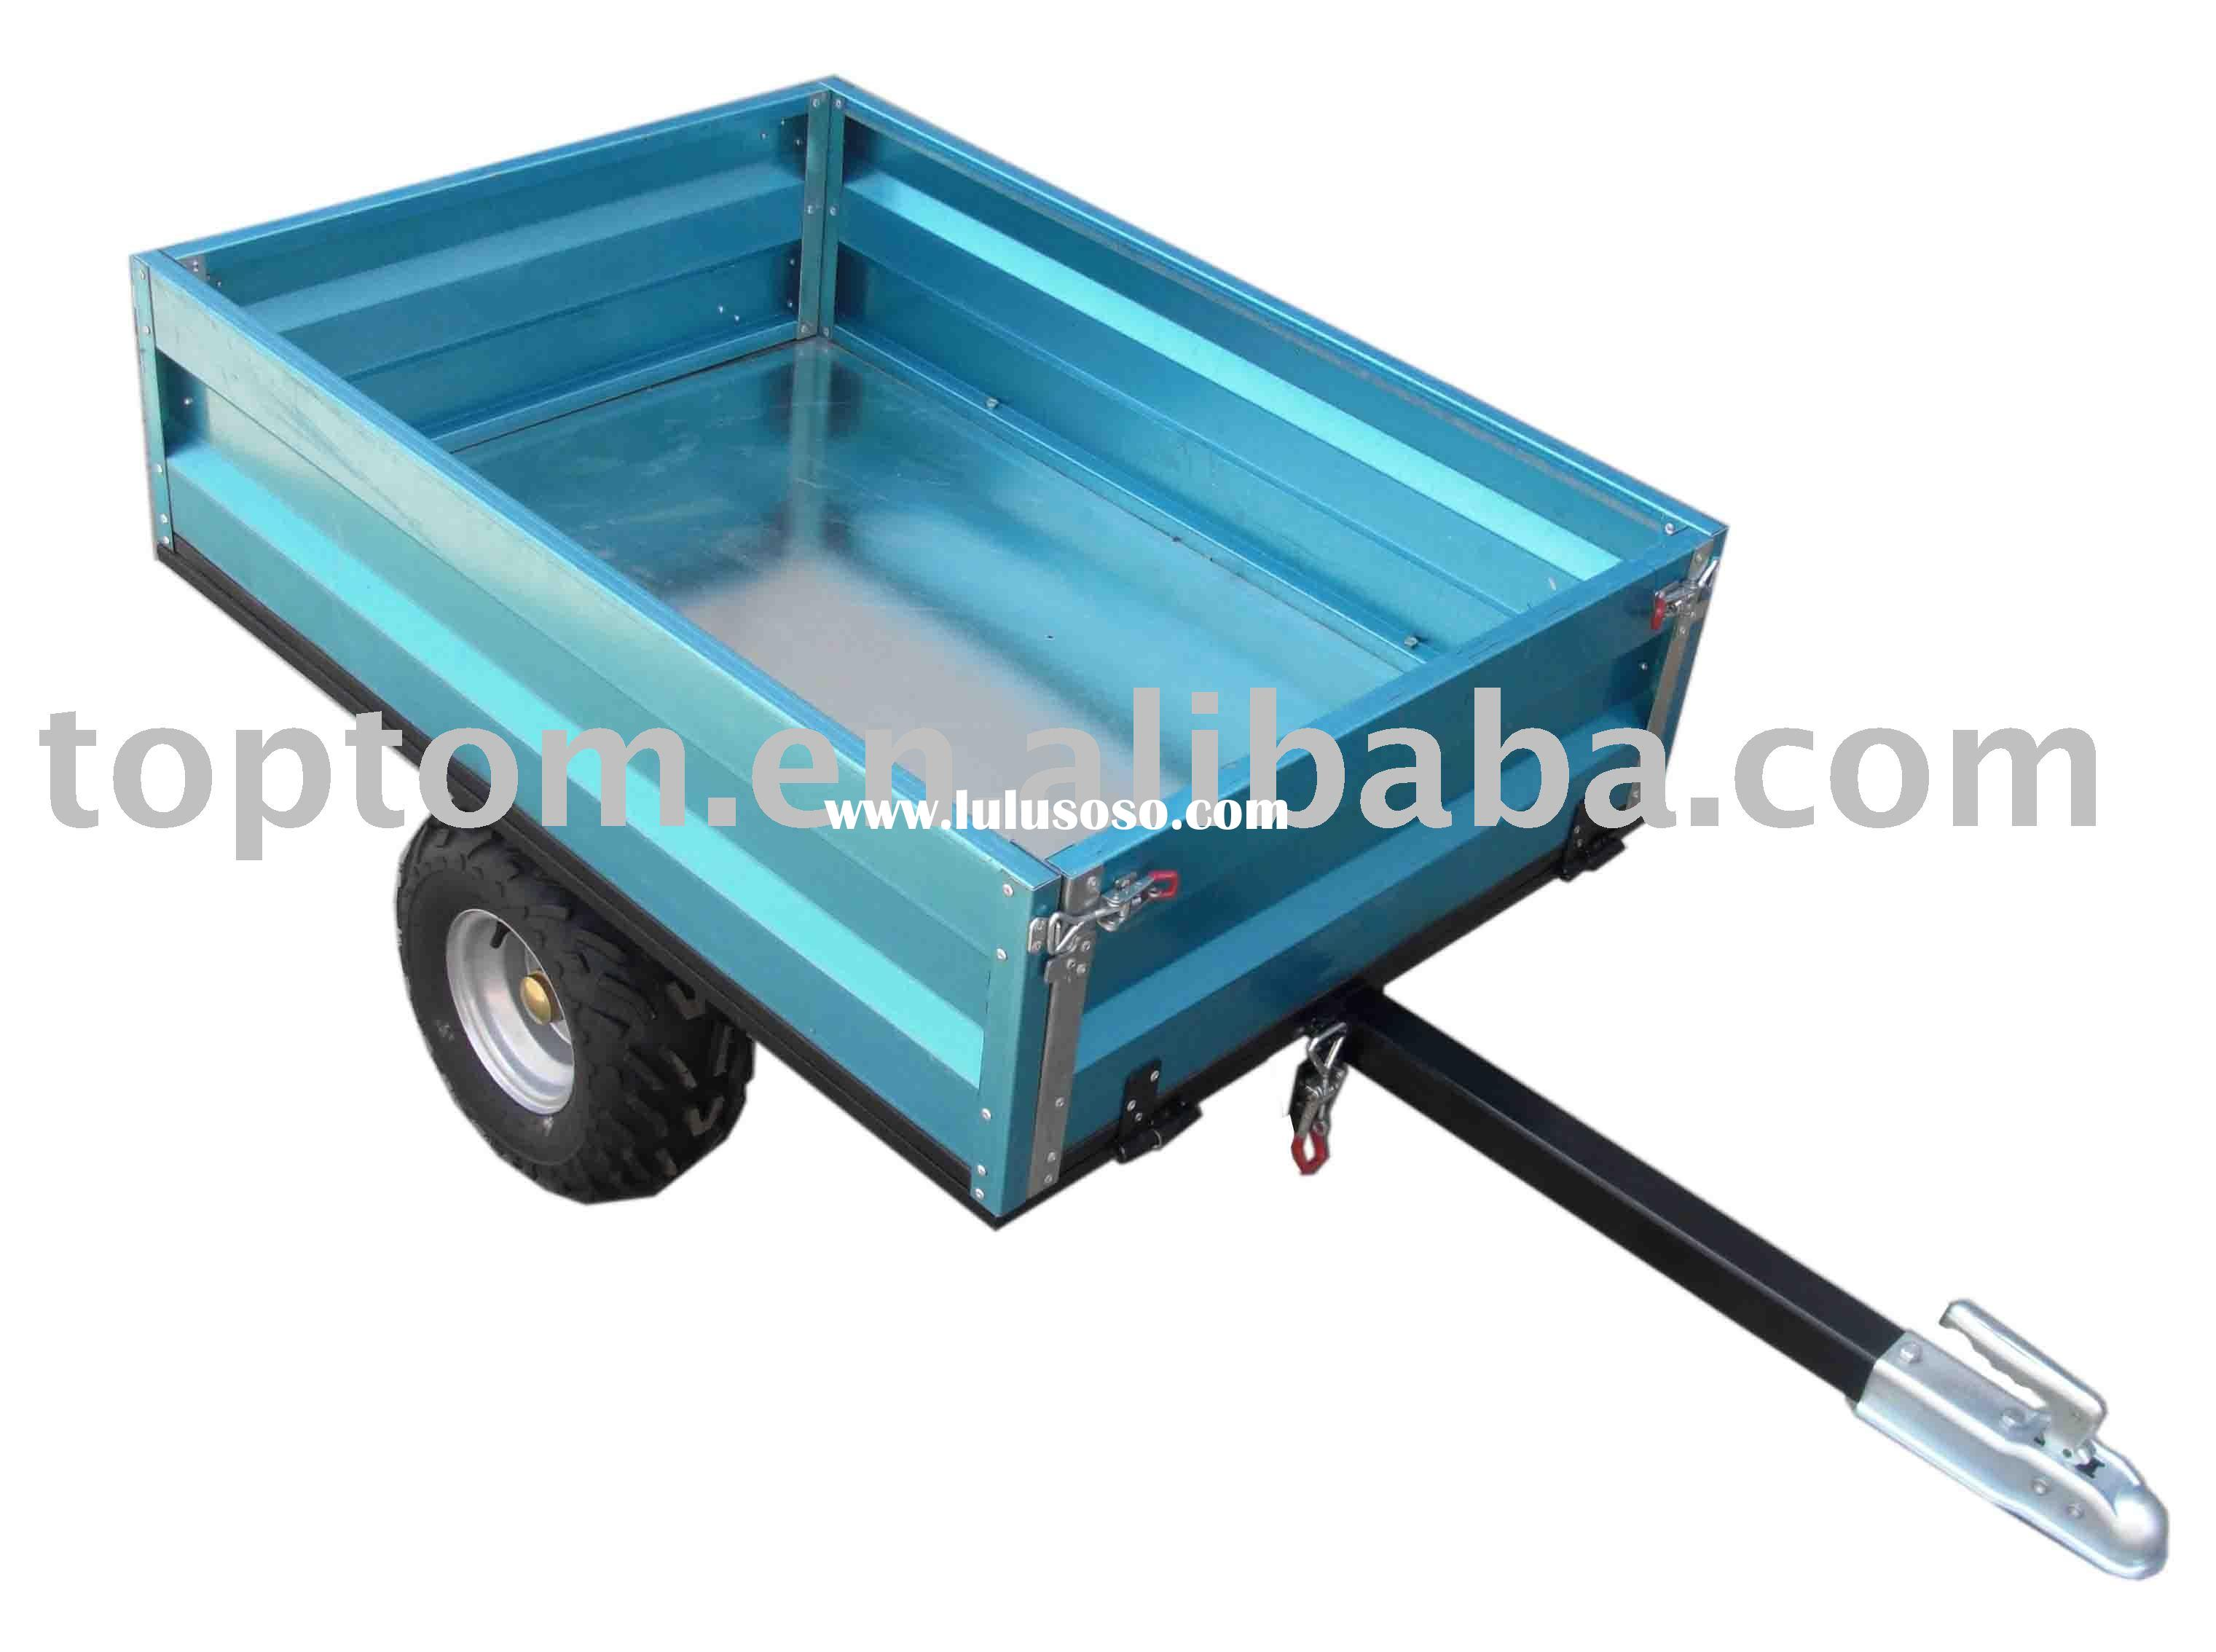 Mini ATV trailer. ATV trailer with tip. box trailer, small box trailer